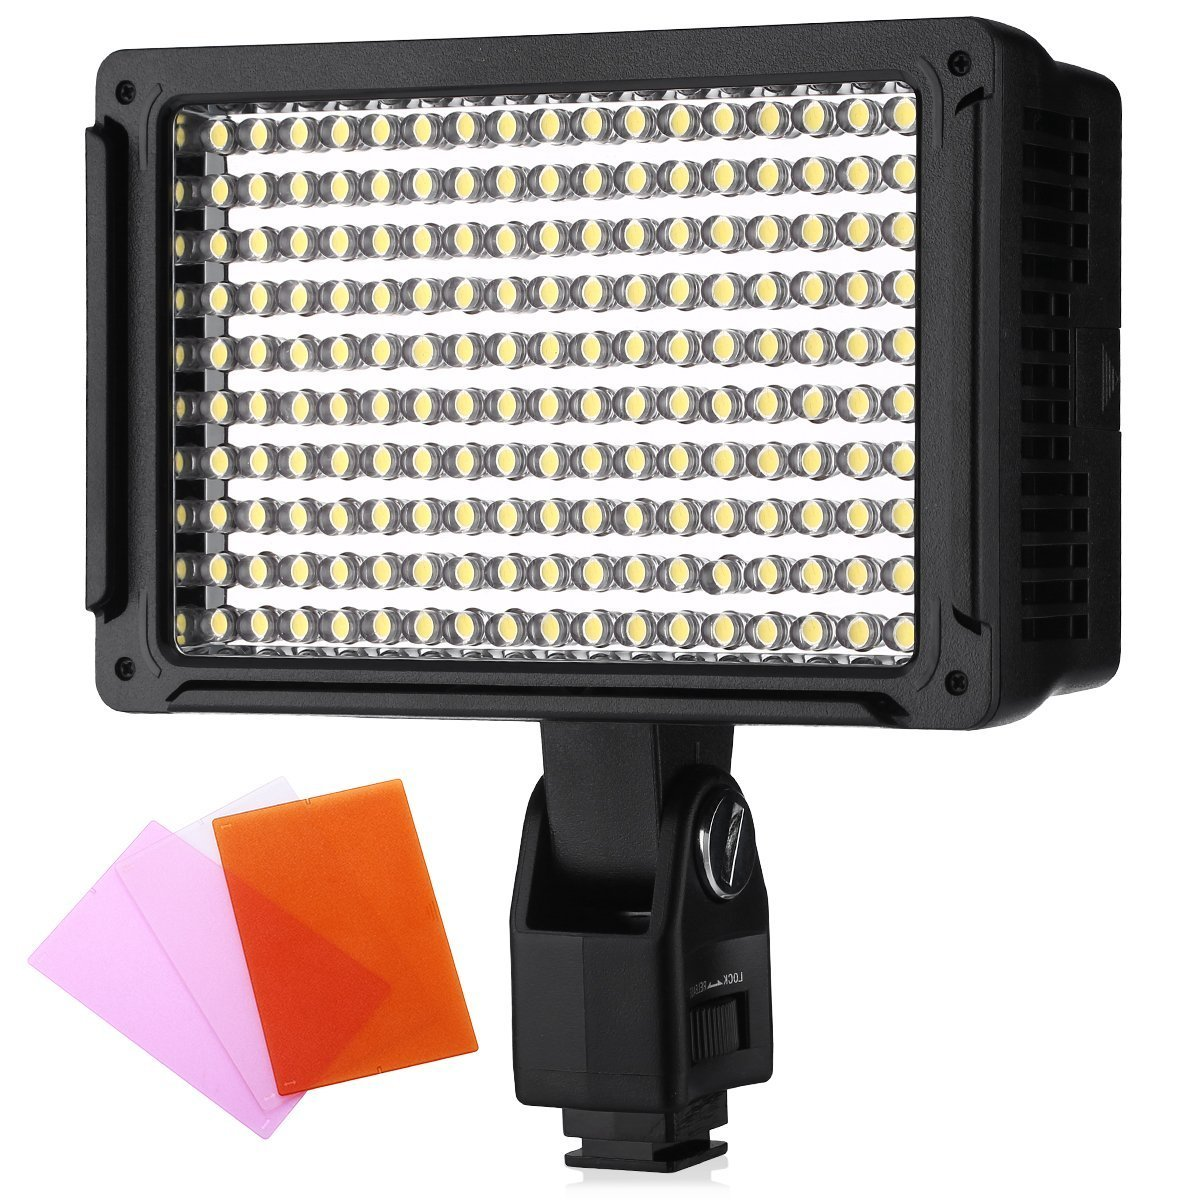 Powerextra 170 LED CRI95 14W Light Panel Dimmable Studio, Camcorder Video Light, Diffuser, 2 Color Filters(Orange and Blue) for Canon Nikon Pentax Samsung Fujifilm Olympus Panasonic DSLR Cameras